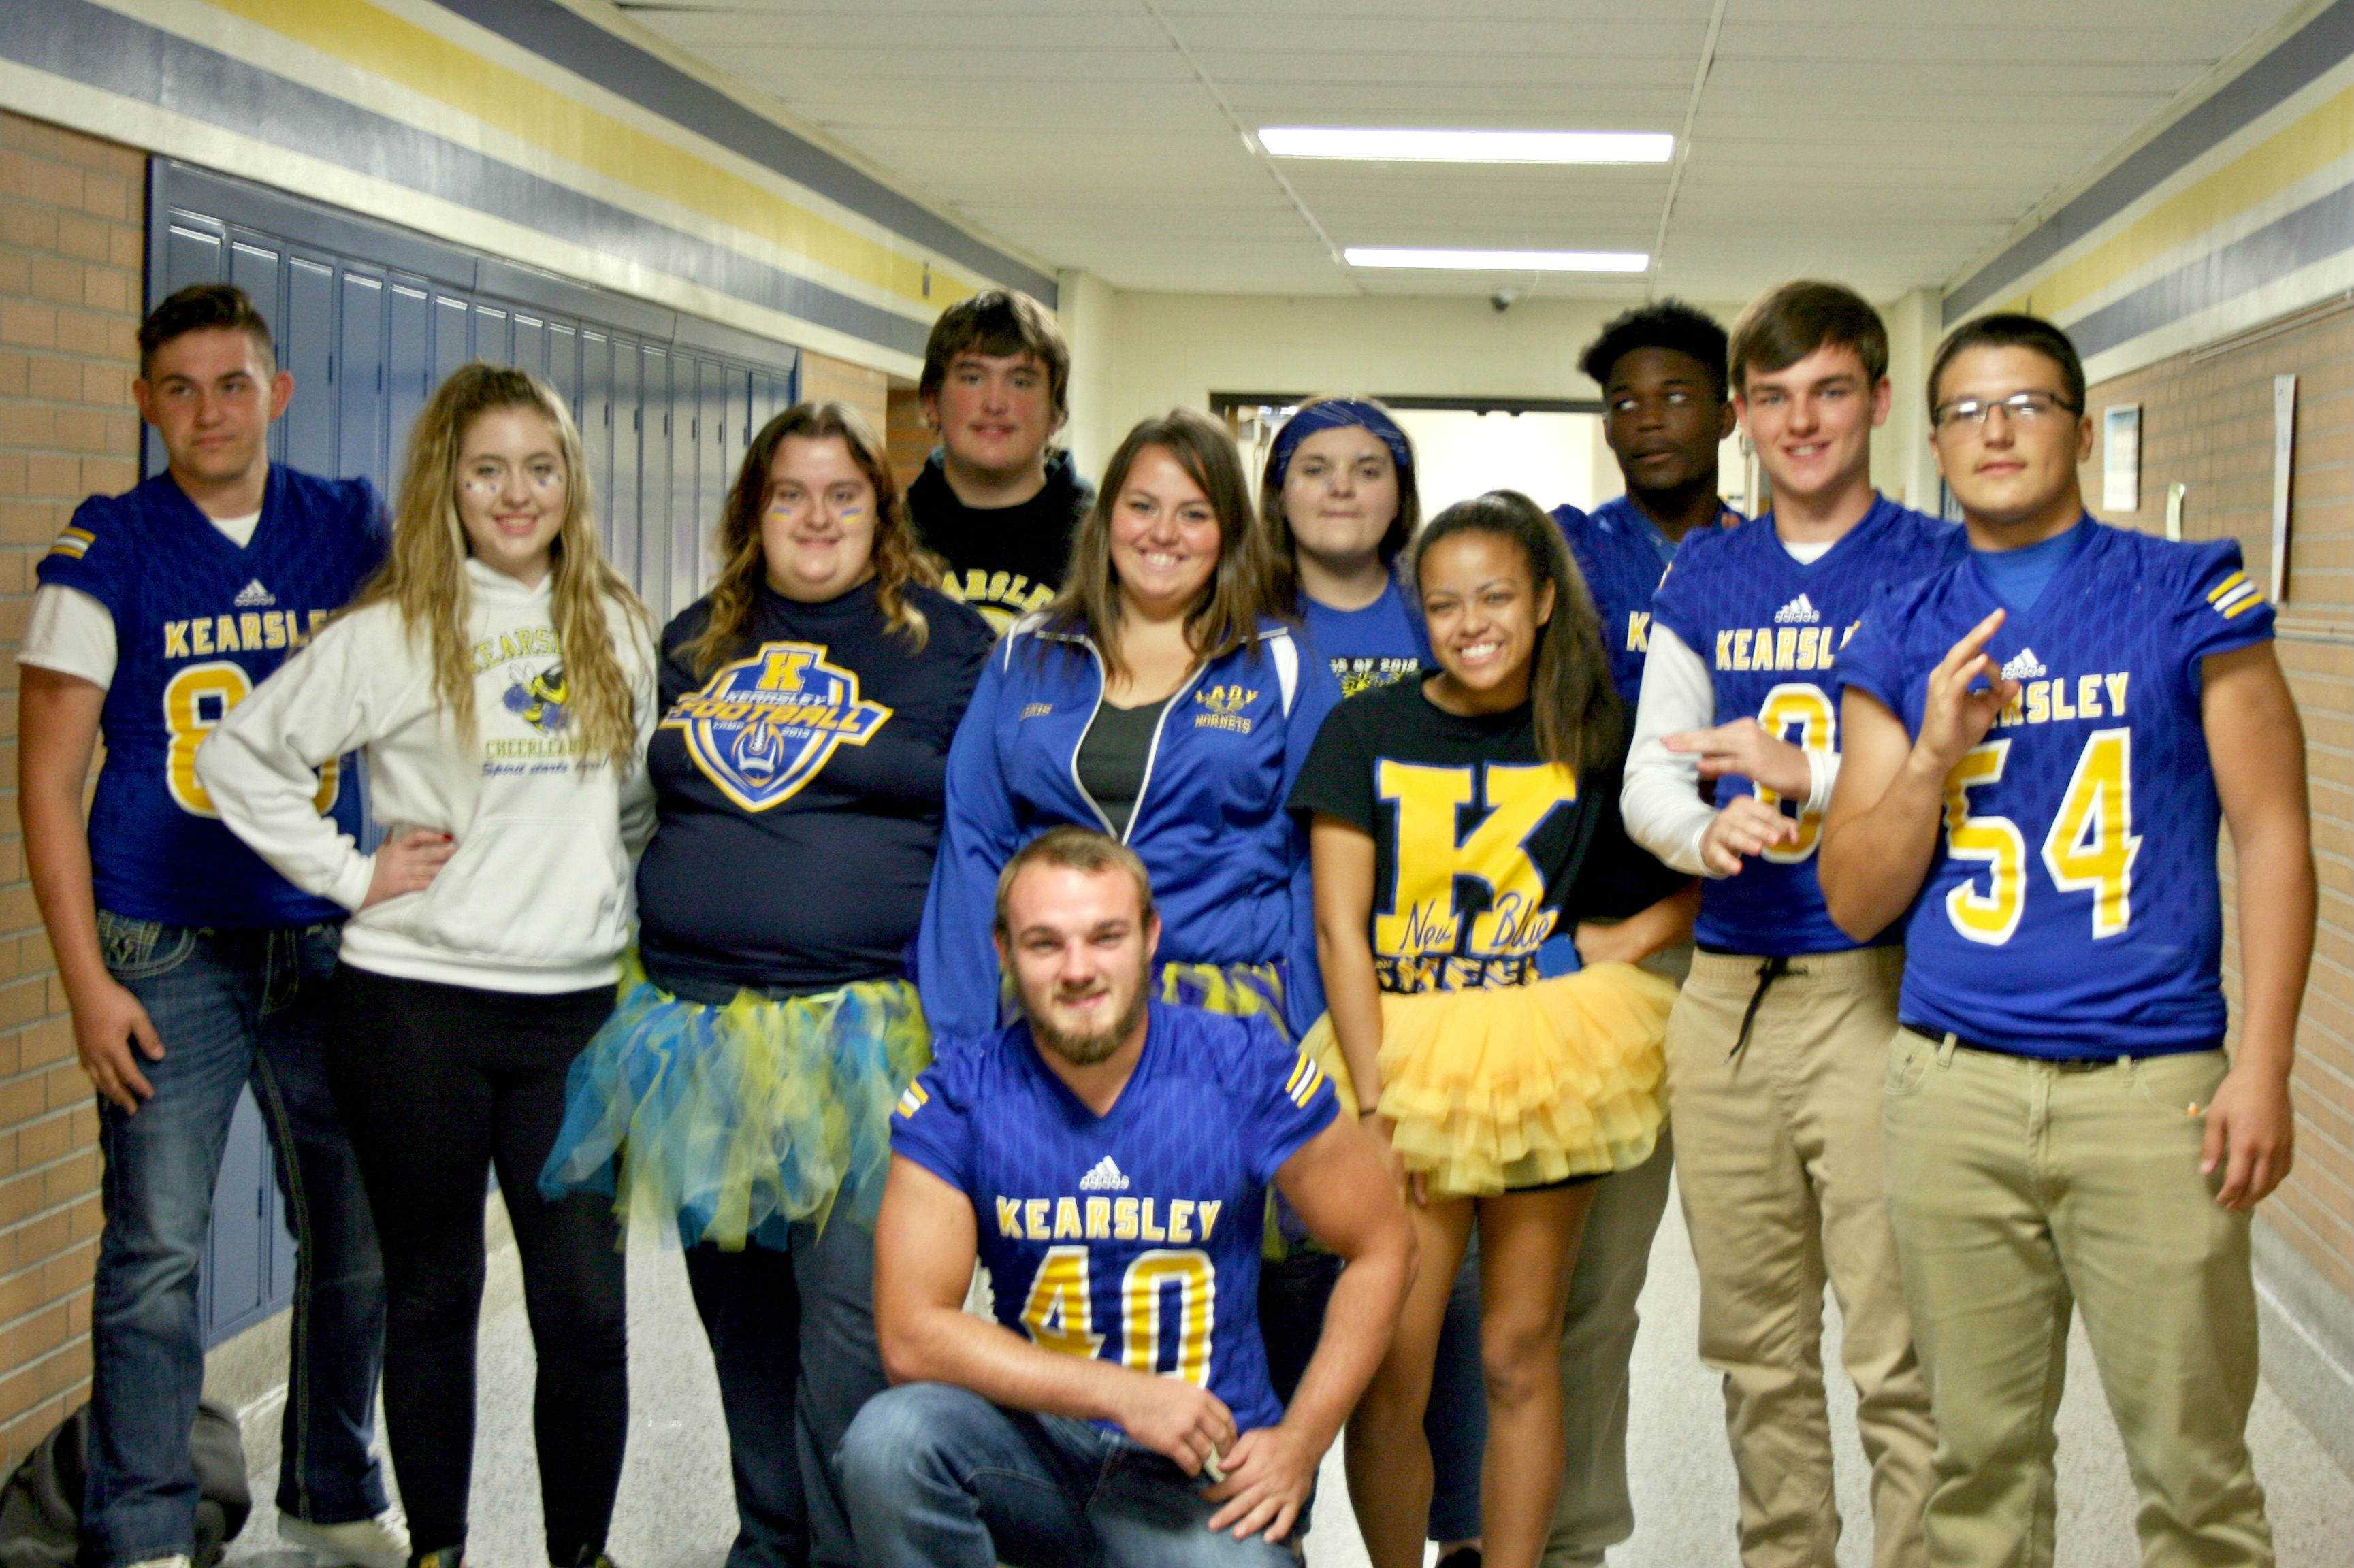 A group of juniors and seniors support their school during Blue and Gold Day.